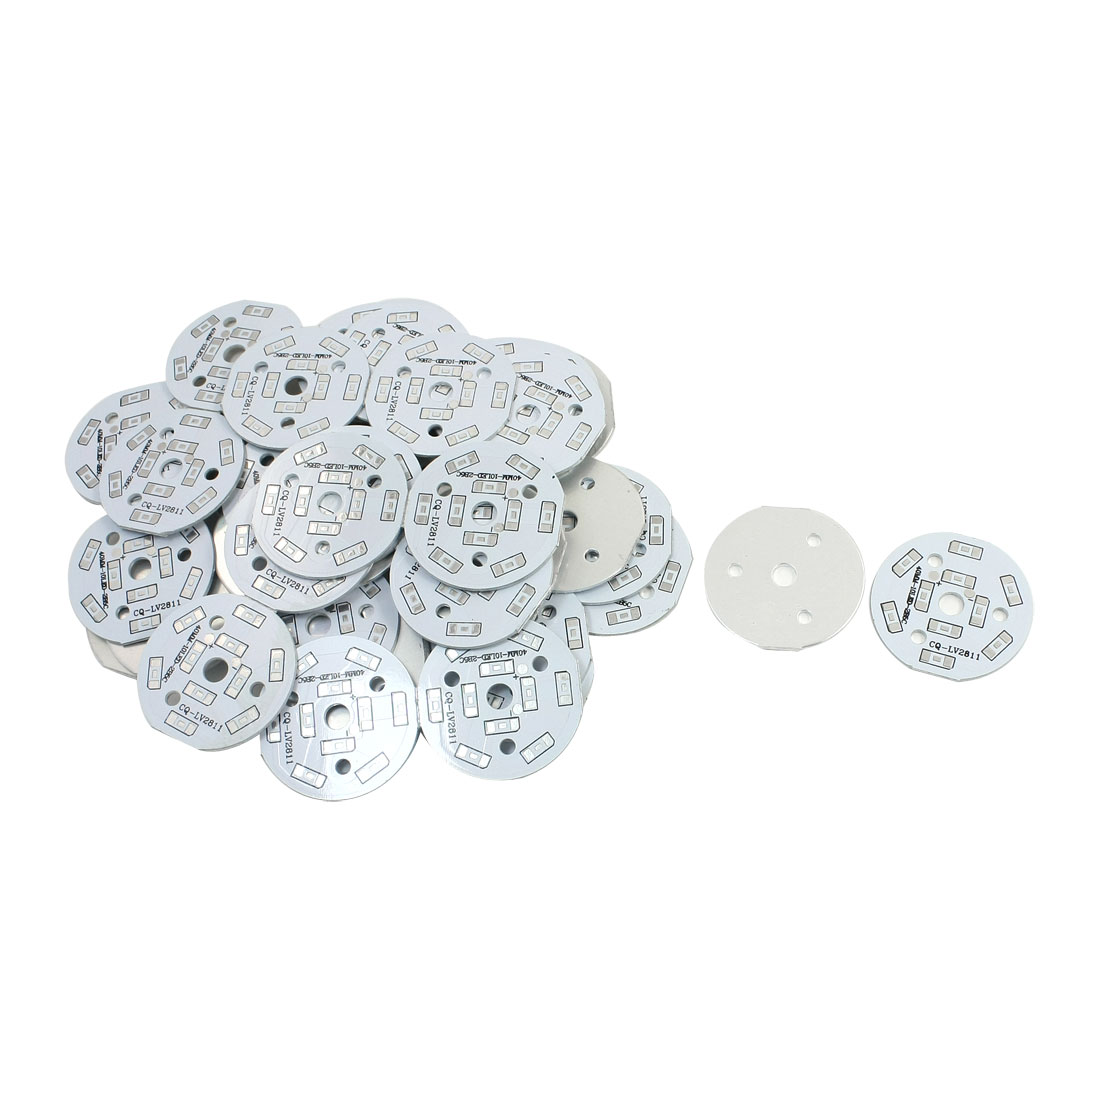 50Pcs 10 x 1/2W 5730 SMD LED High Power DIY Circle Aluminum PCB Circuit Board 40mm Diameter